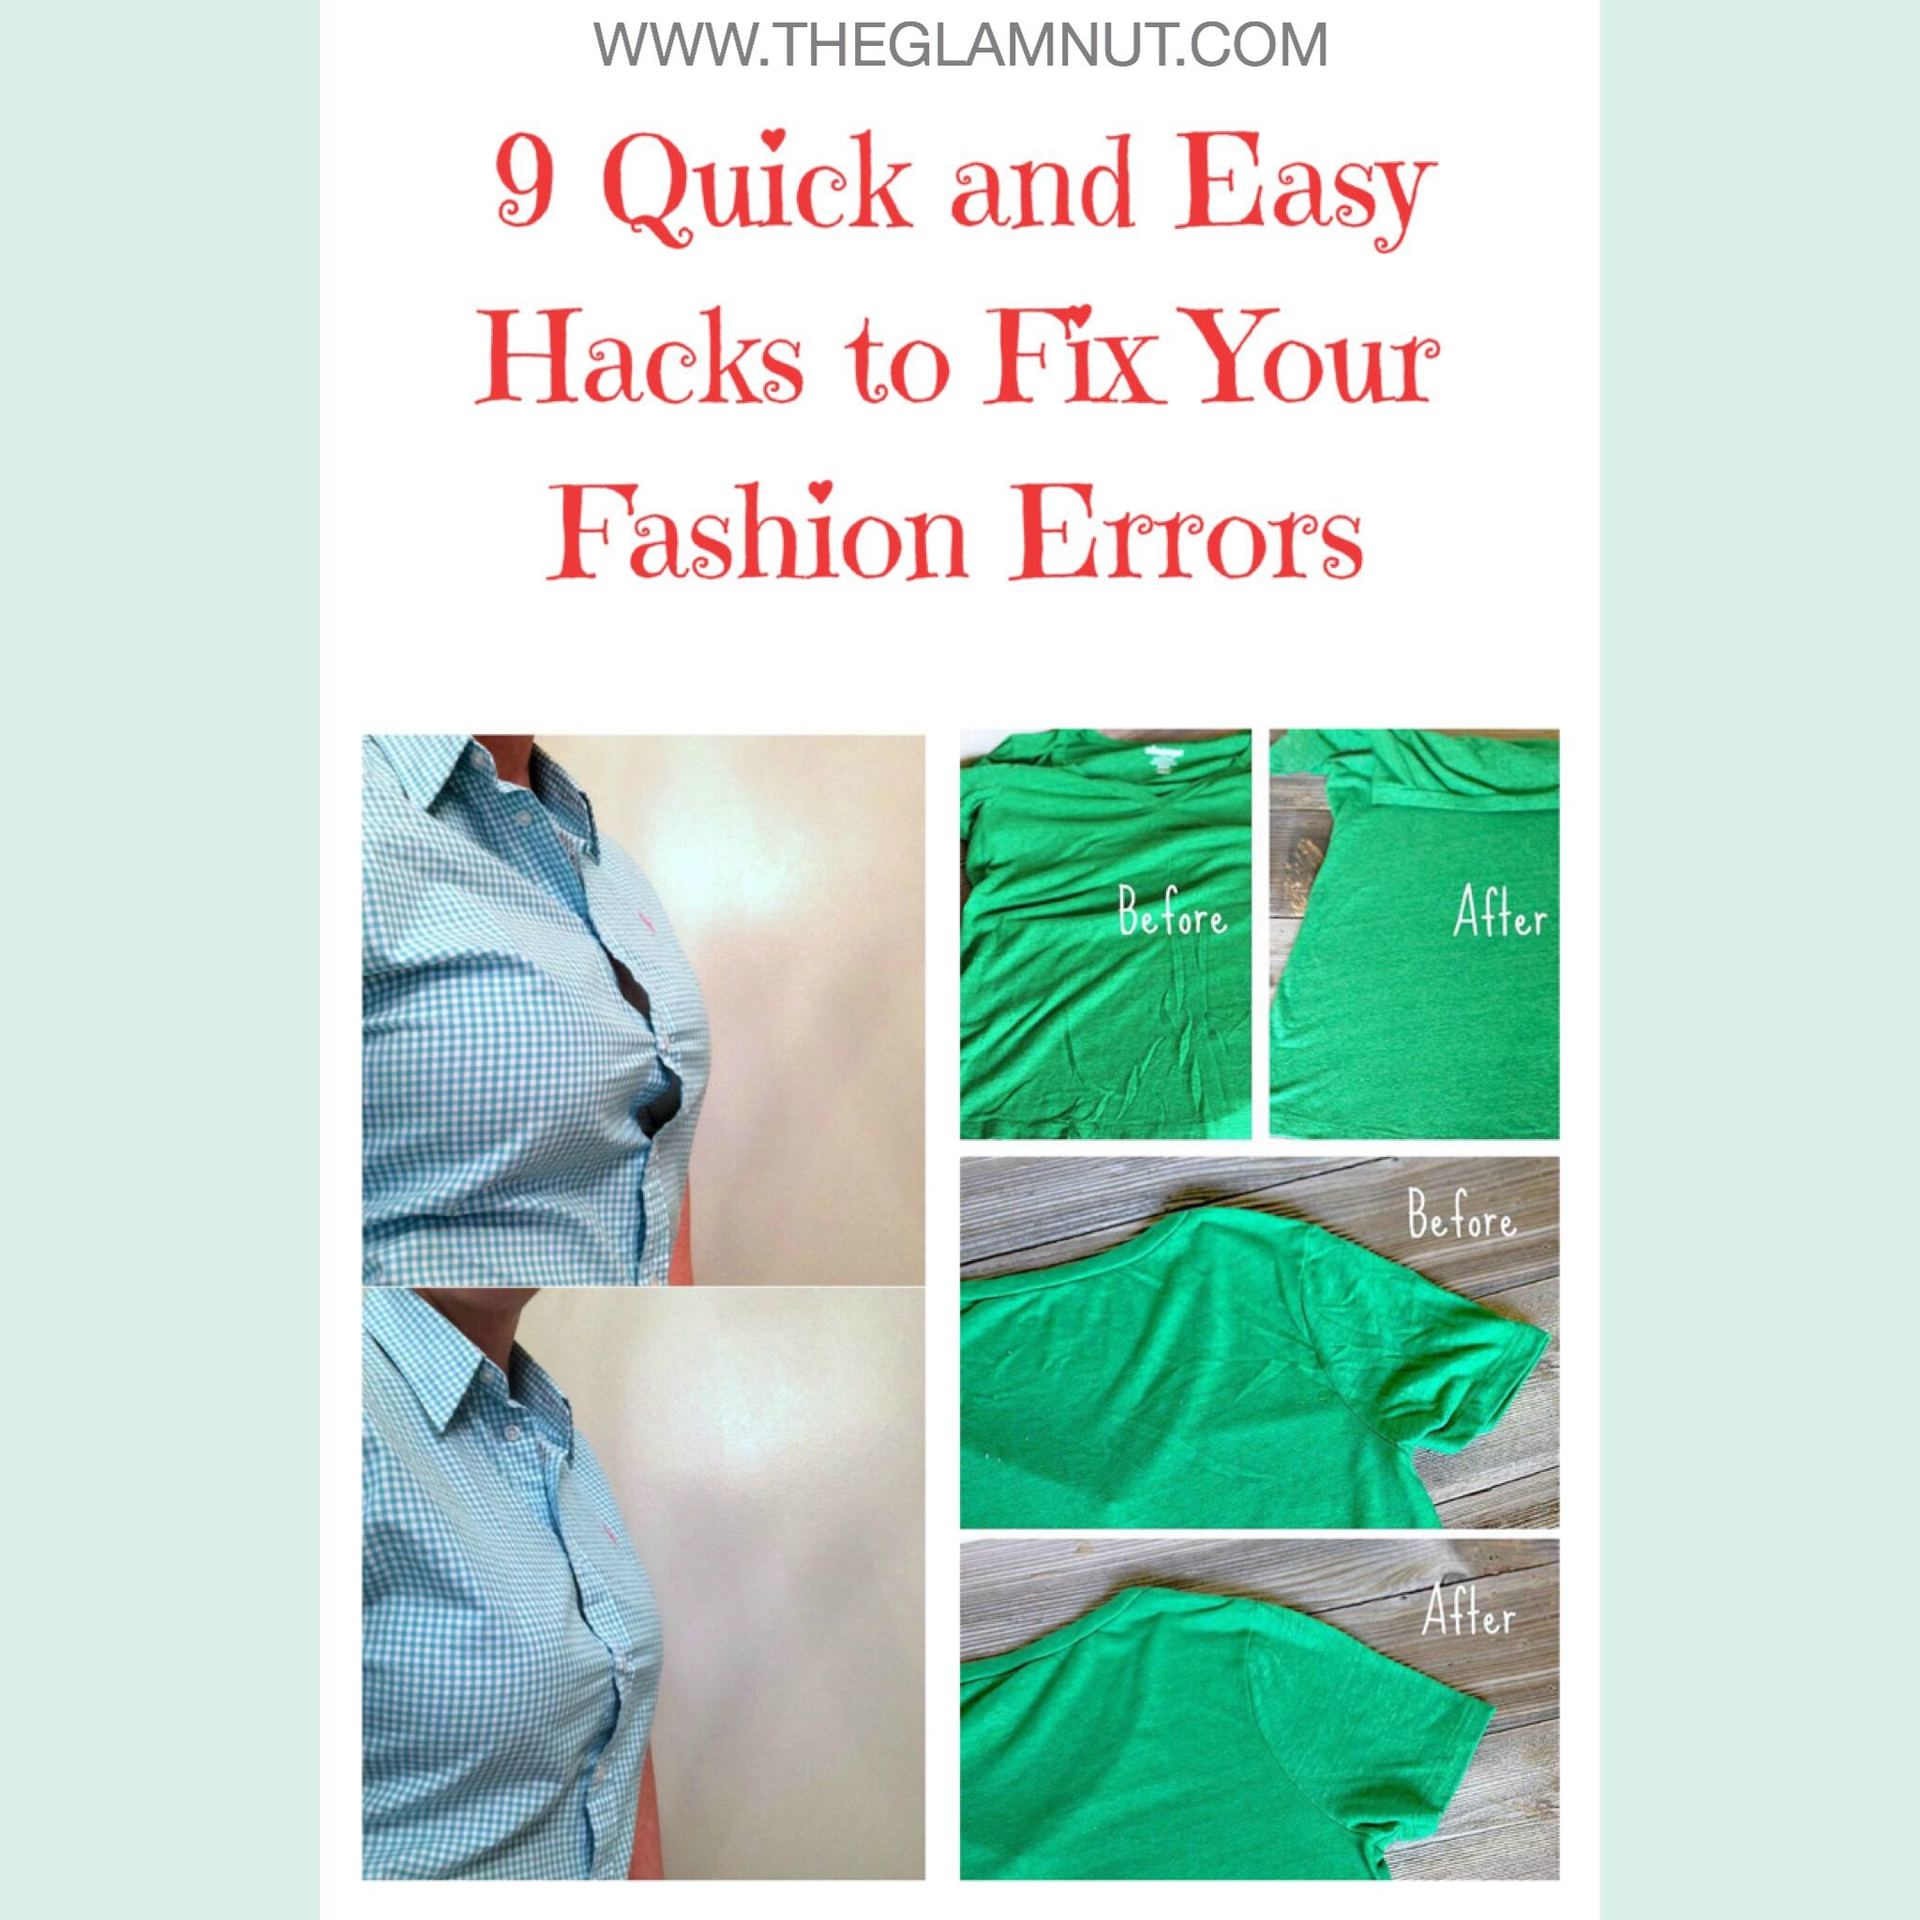 9 Quick And Easy Hacks To Fix Your Fashion Errors! image